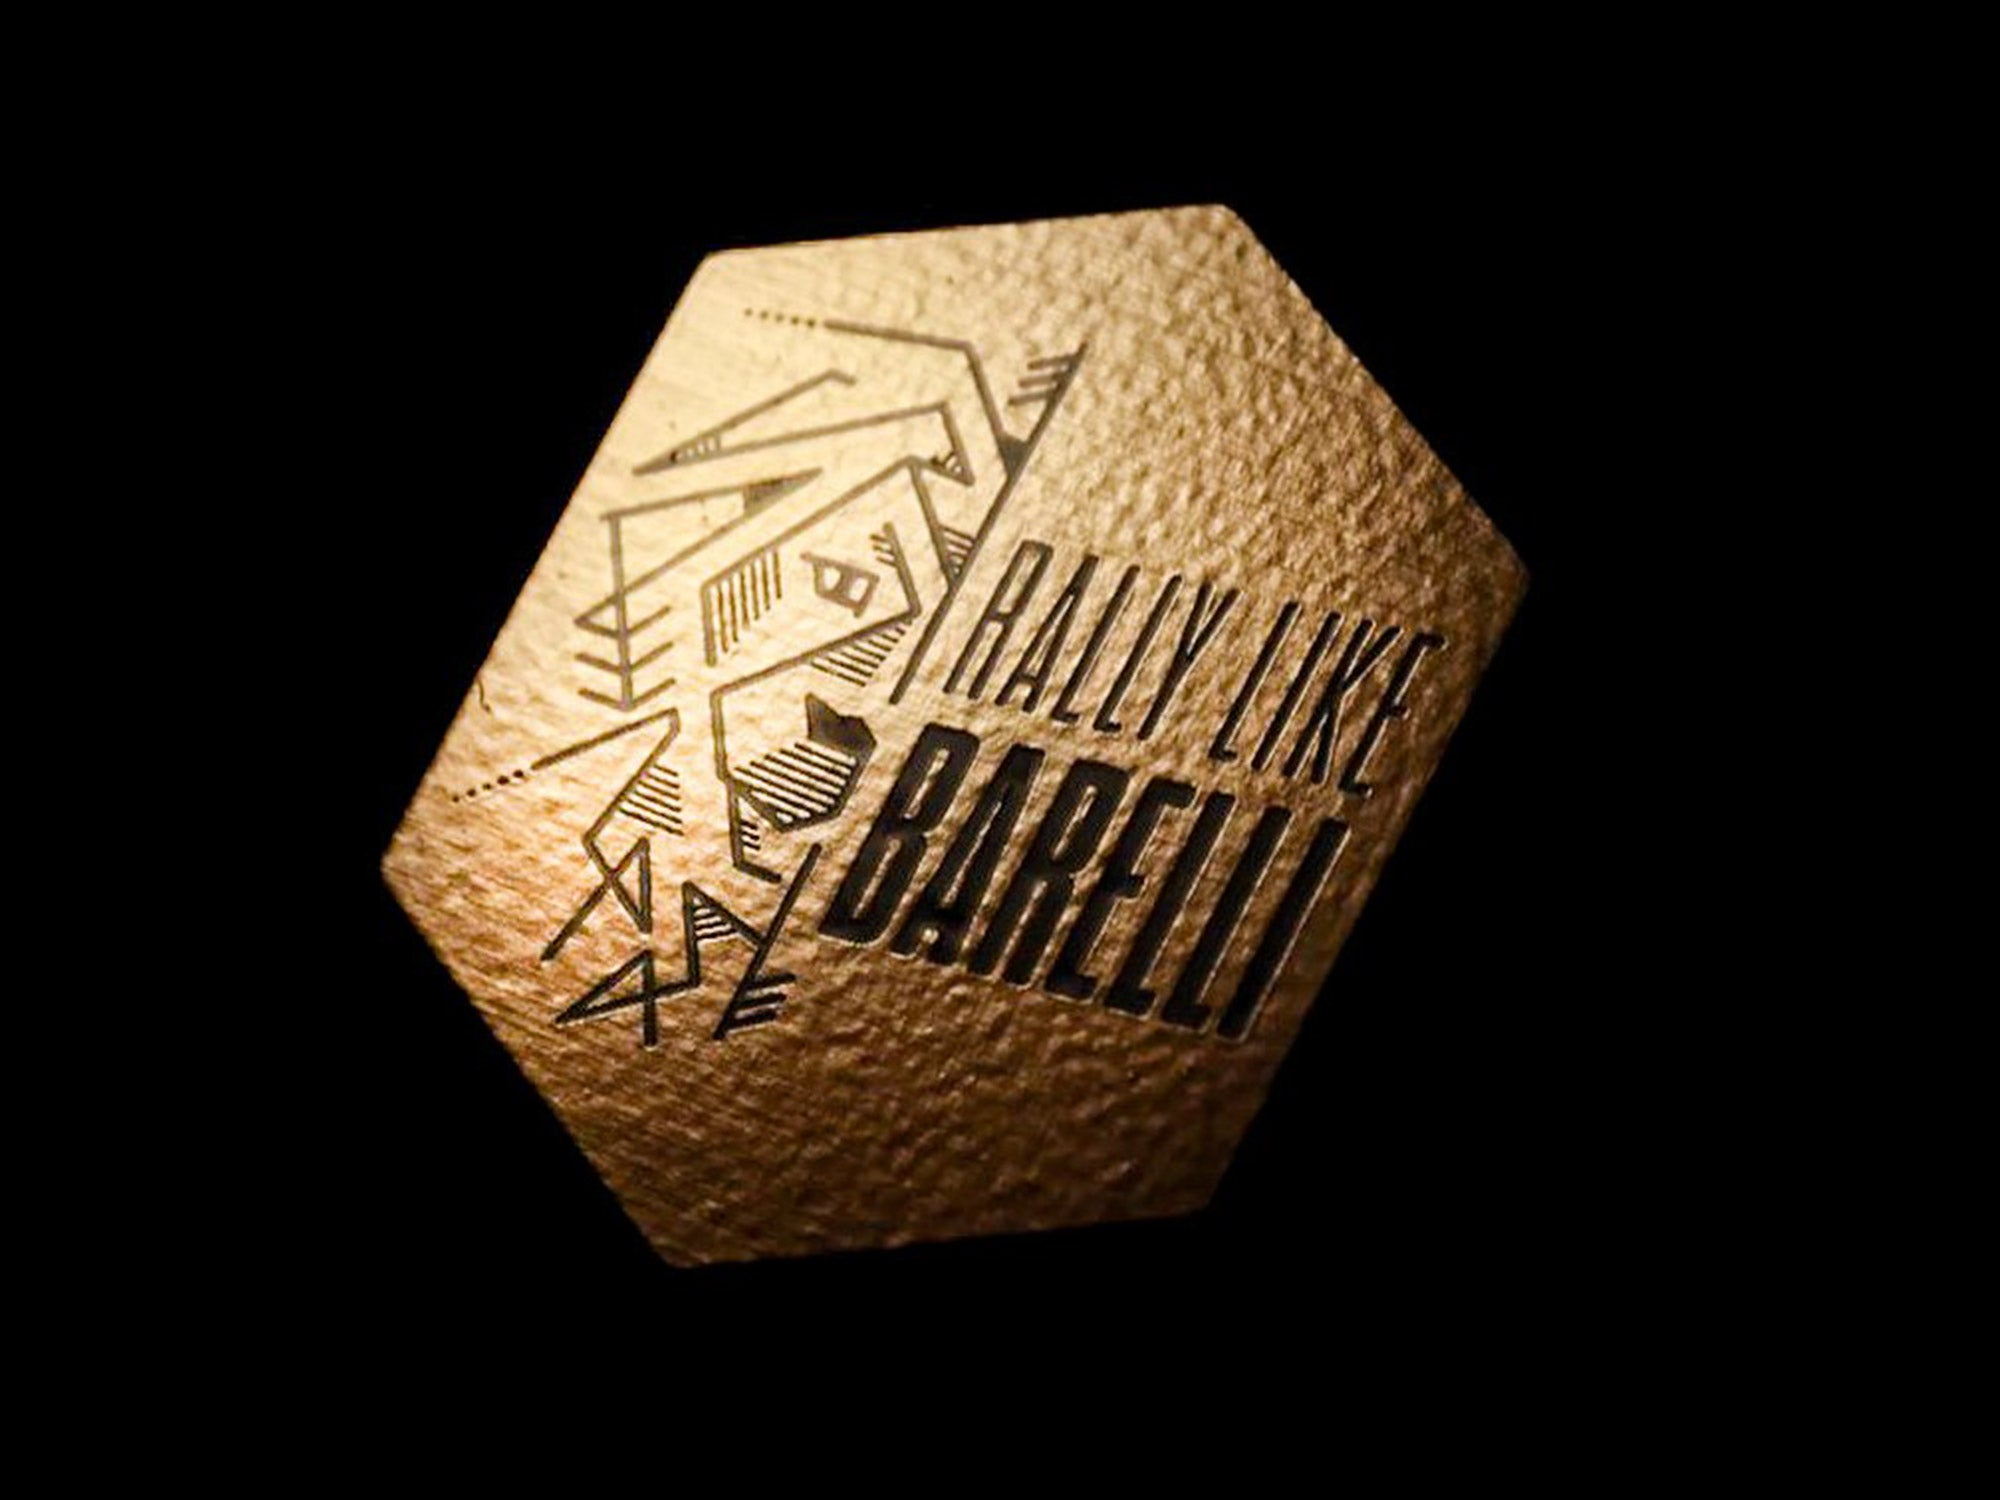 An Image of Yoann Barelli's Signature Lion Decal on a black background. The decal is gold.